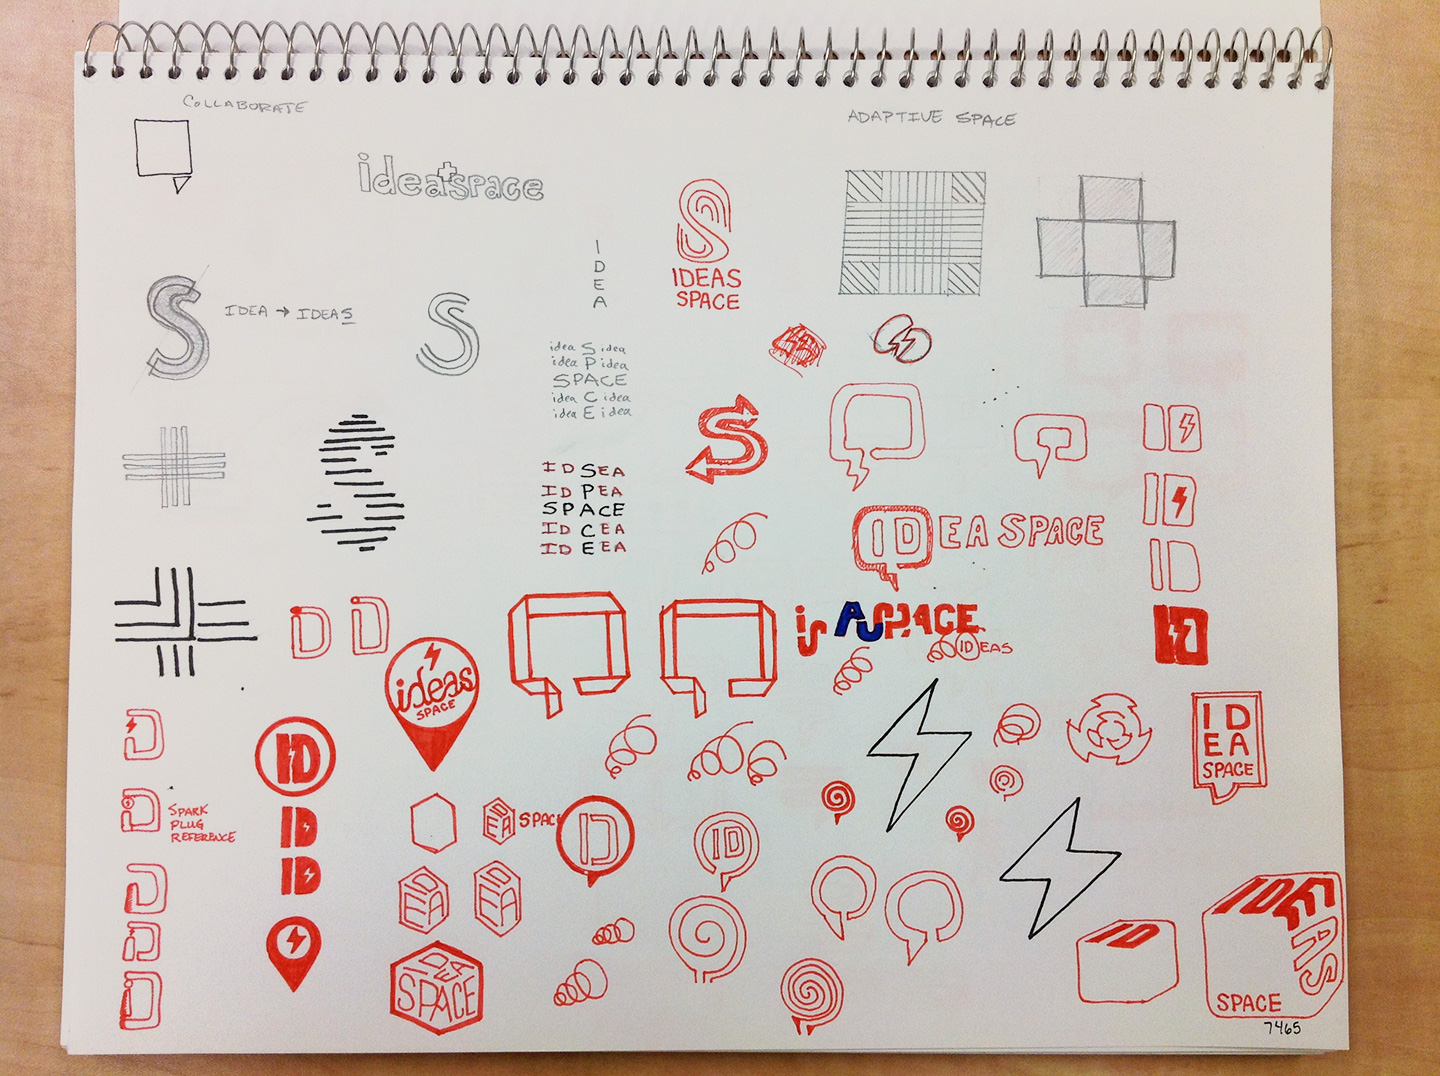 Sketchbook page covered in icon and logo concepts